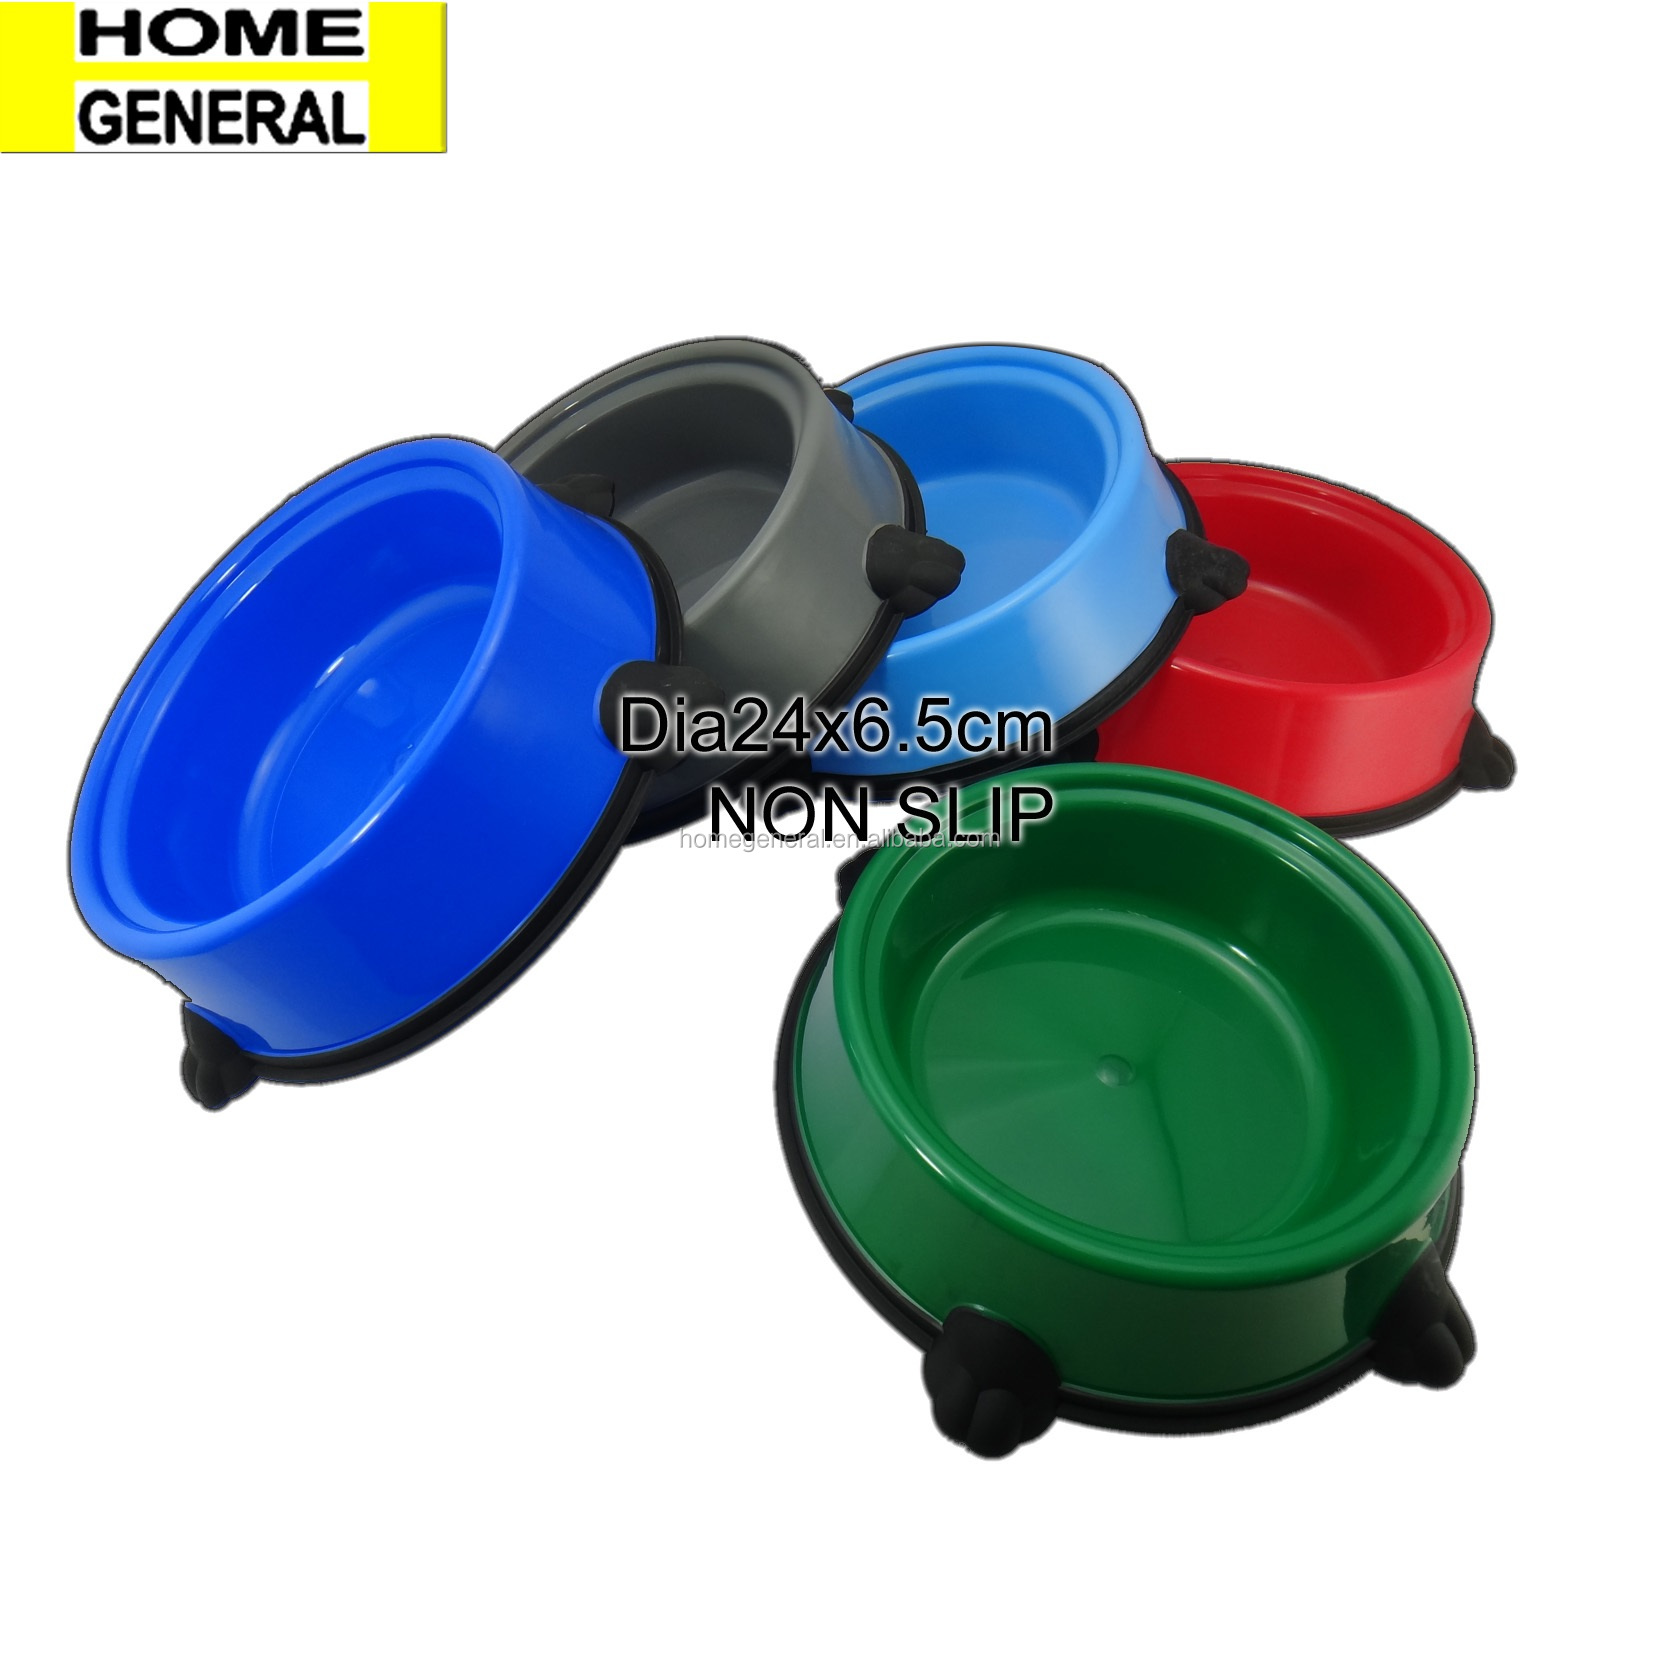 PET GENERAL NON SLIP PET FEEDING BOWL ROUND DOG BOWL CAT BOWL